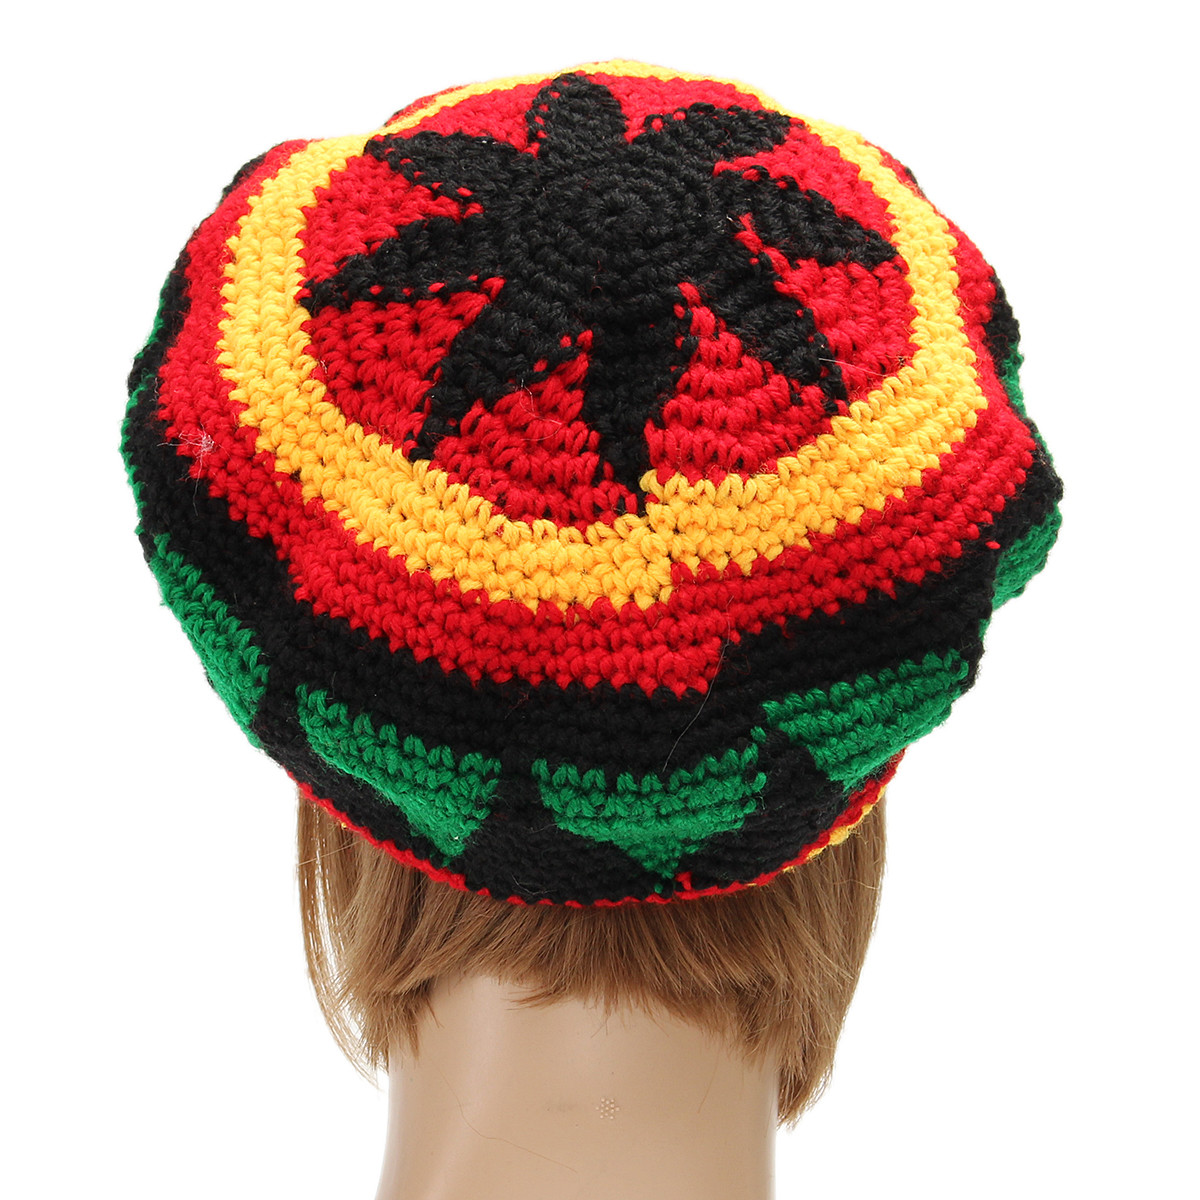 Women Wool Fake Dreadlocks Hat Christmas Day Hand Crochet Beret Cap Colorful Spoof Topper